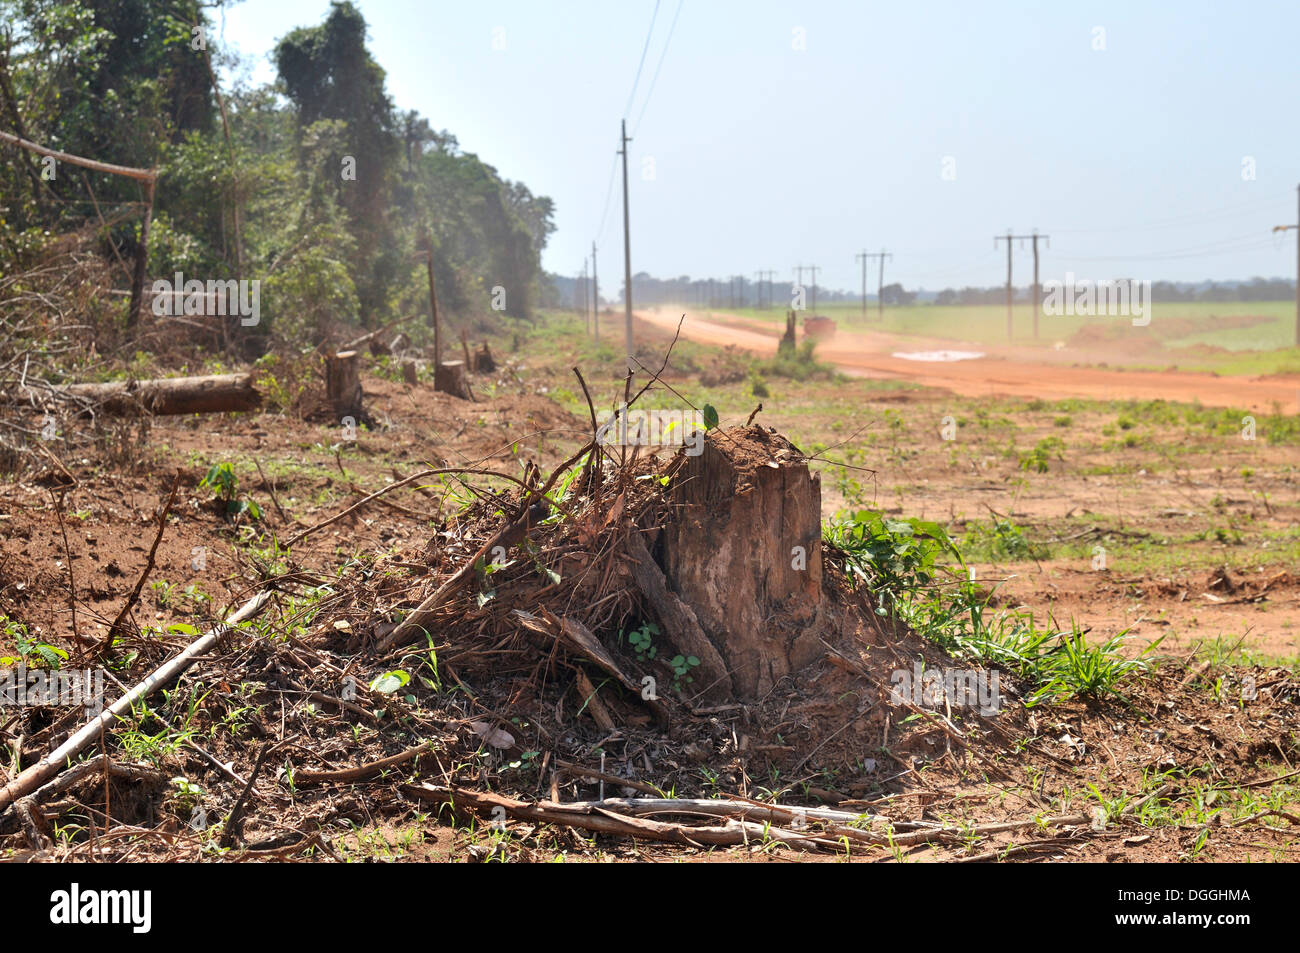 Deforestation of the Amazon rainforest for road construction, Sinop, Mato Grosso, Brazil, South America - Stock Image